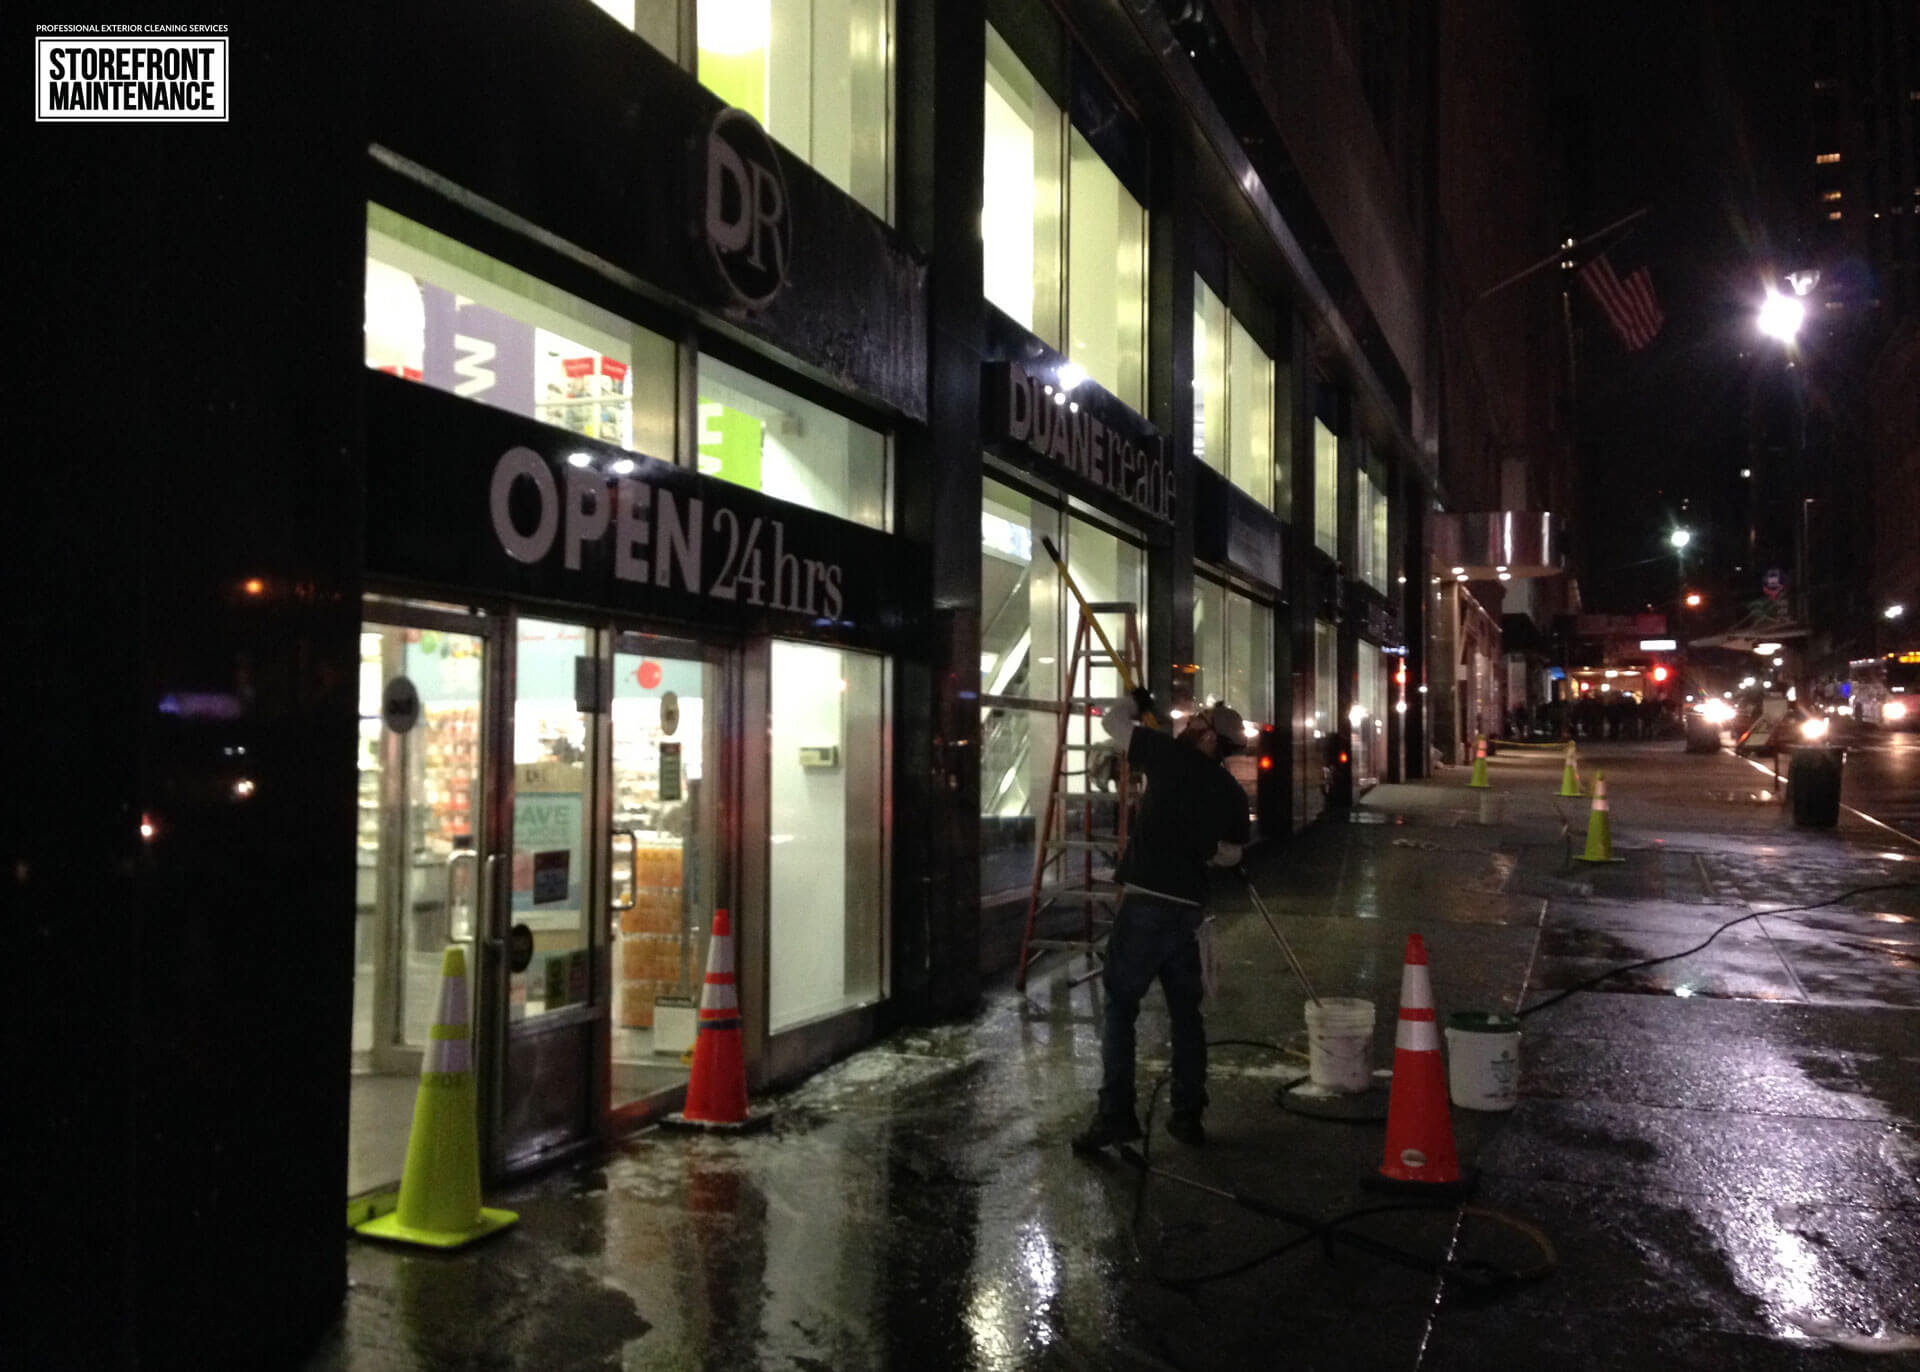 NYC Storefront Sign Cleaning and Pressure Washing 5